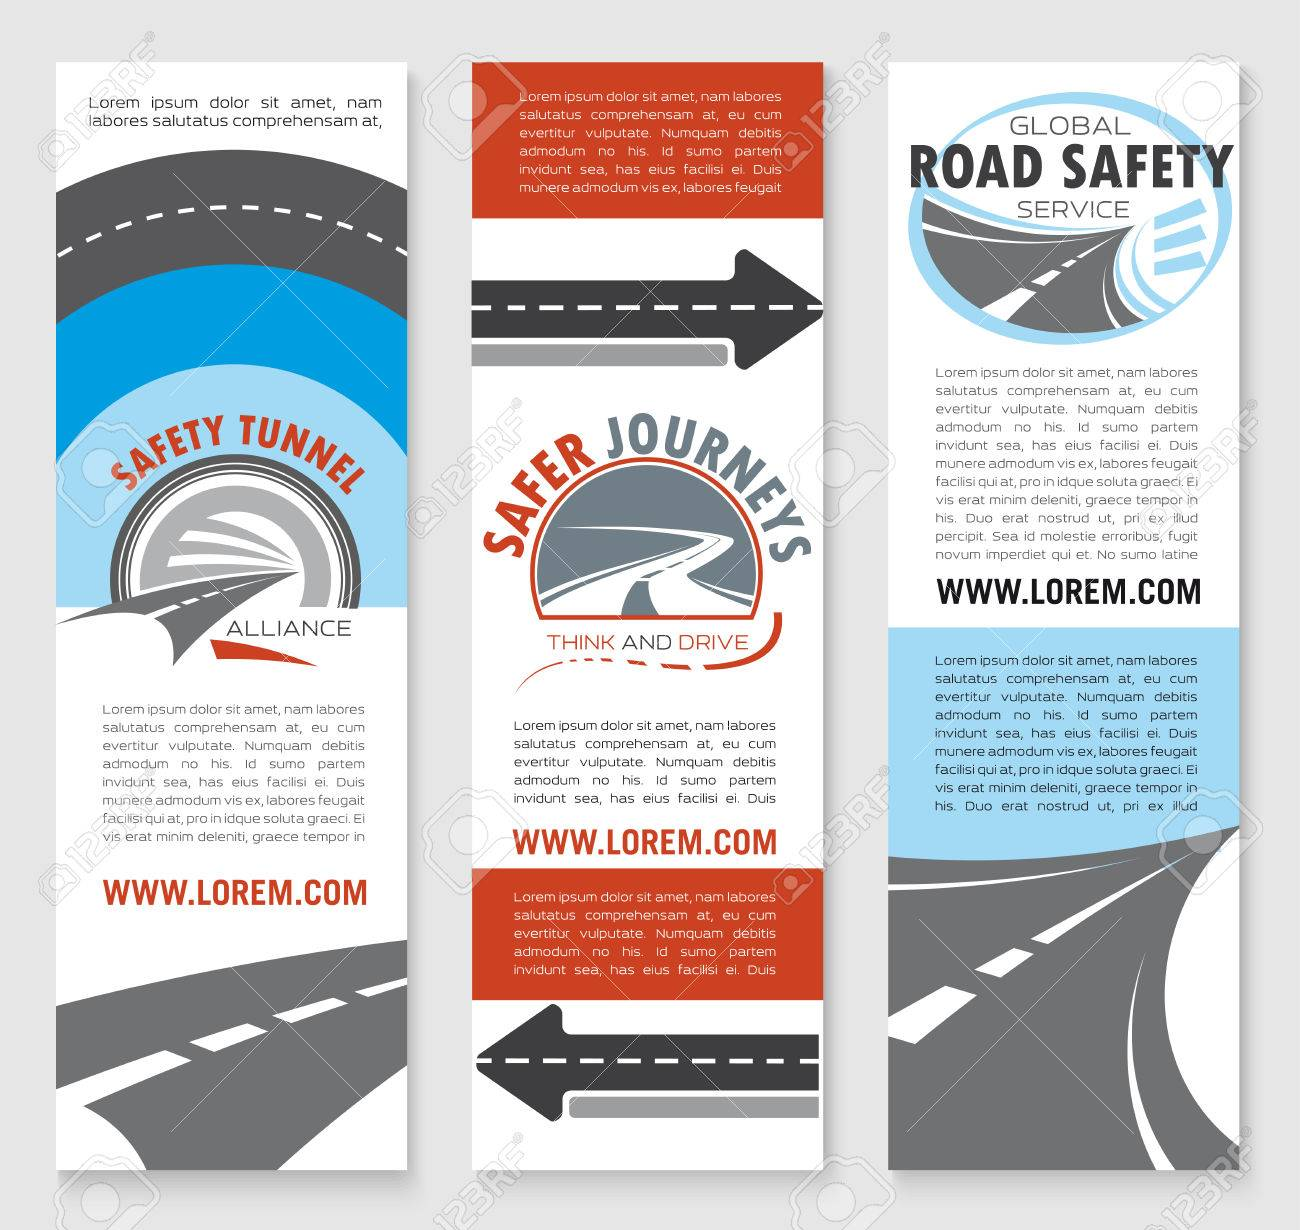 Transportation Services Travel Agency And Traffic Safety Flyer Or